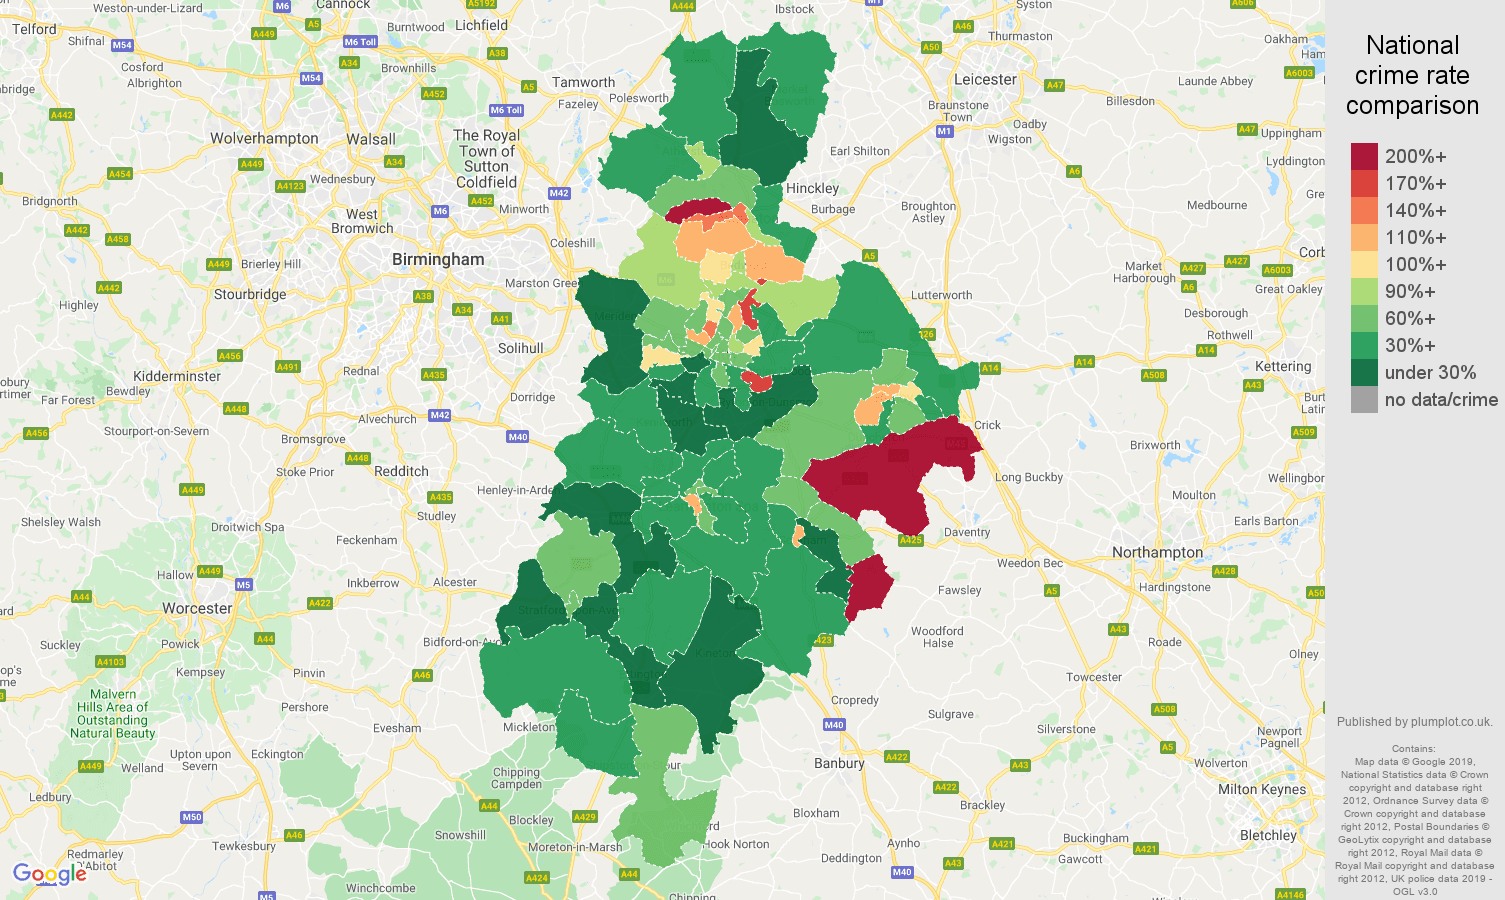 Coventry other crime rate comparison map